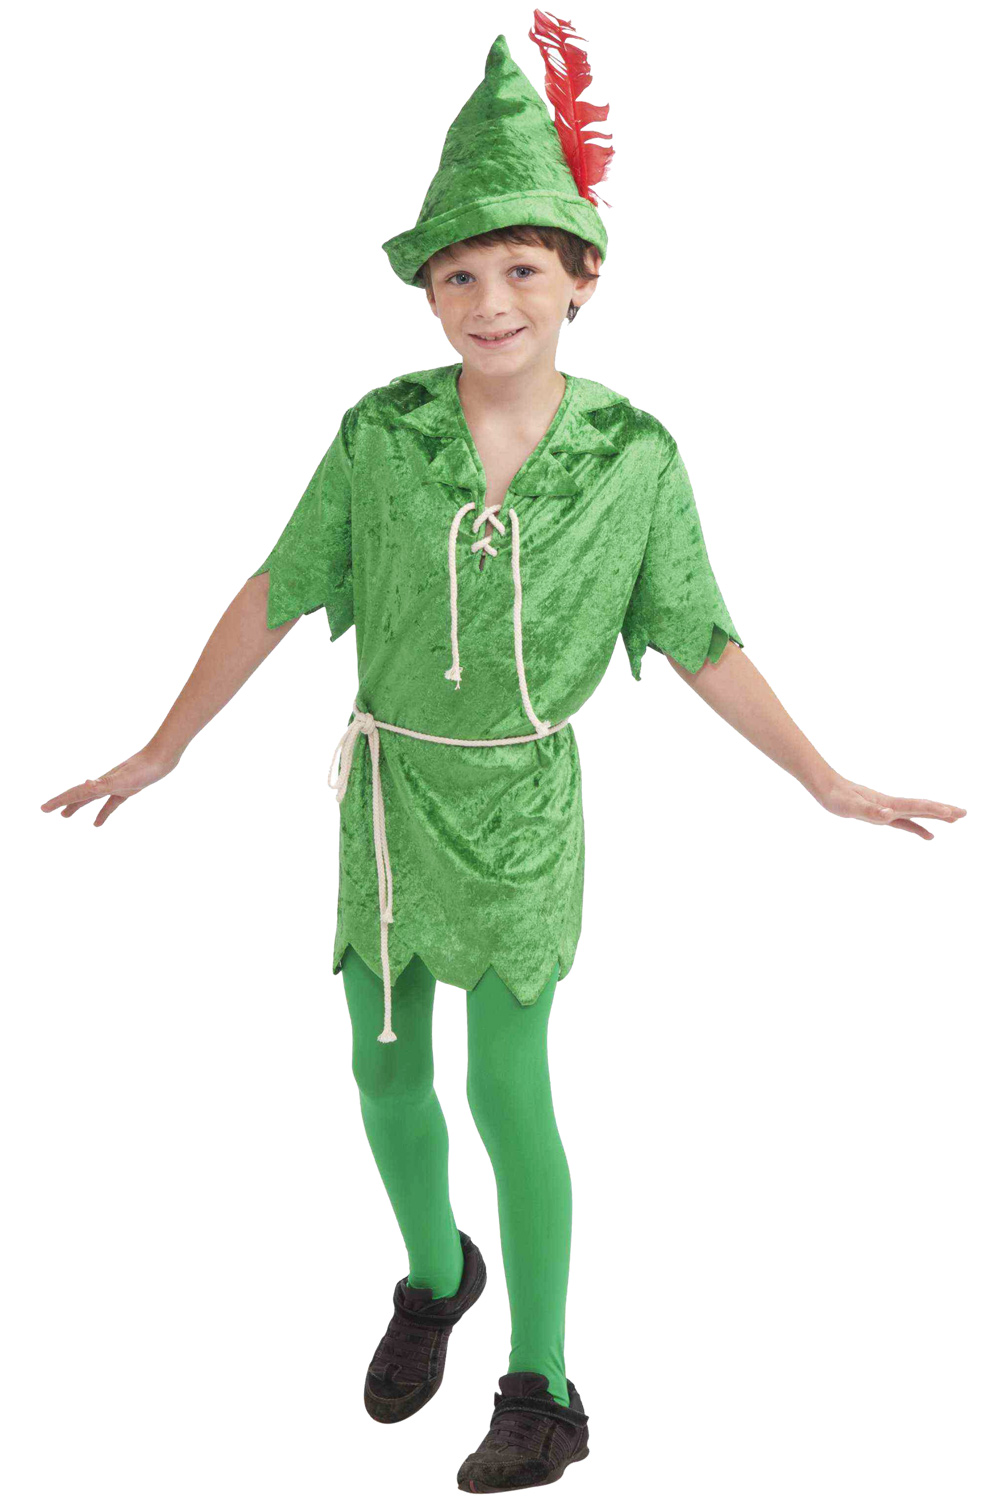 peter pan halloween costumes canada 2016 halloween costumes. Black Bedroom Furniture Sets. Home Design Ideas